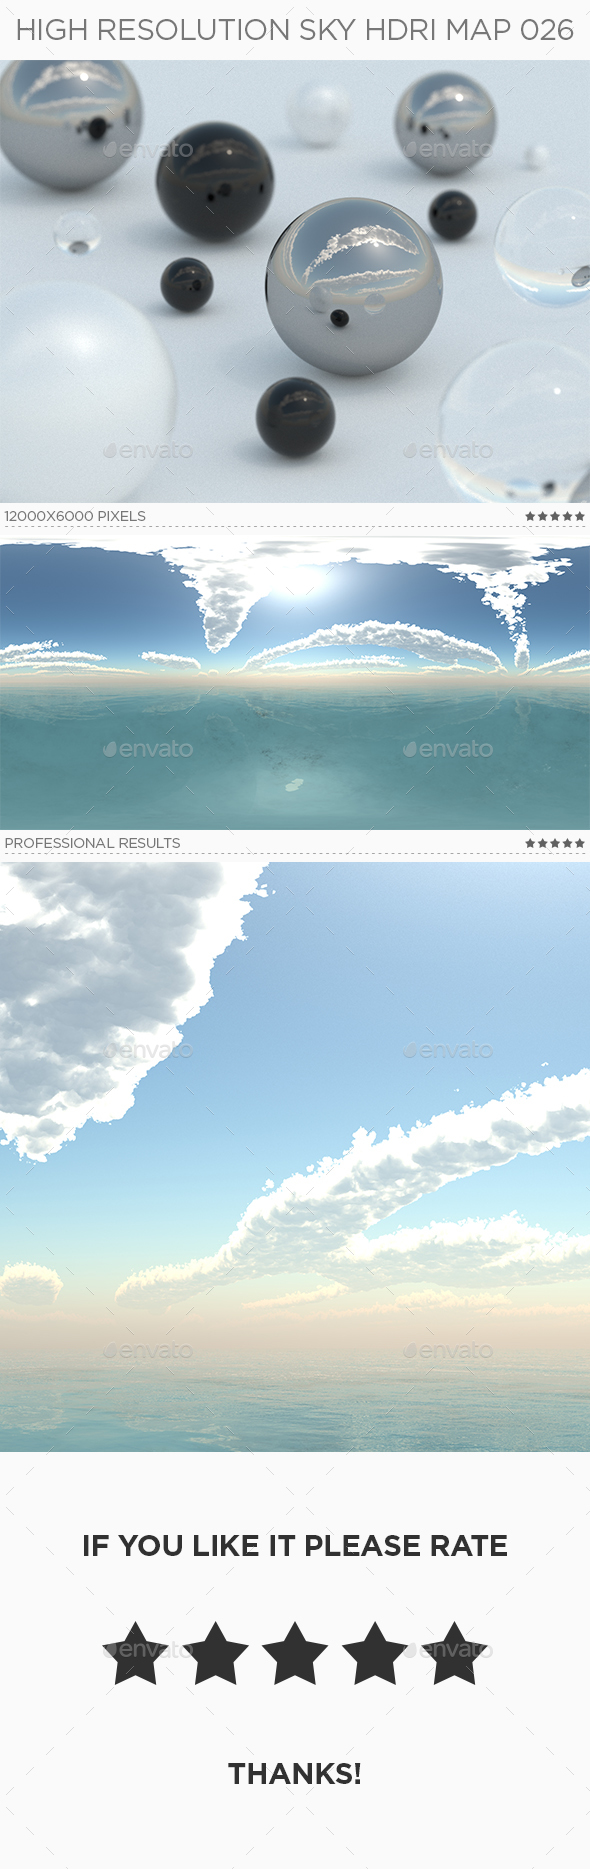 High Resolution Sky HDRi Map 026 - 3DOcean Item for Sale